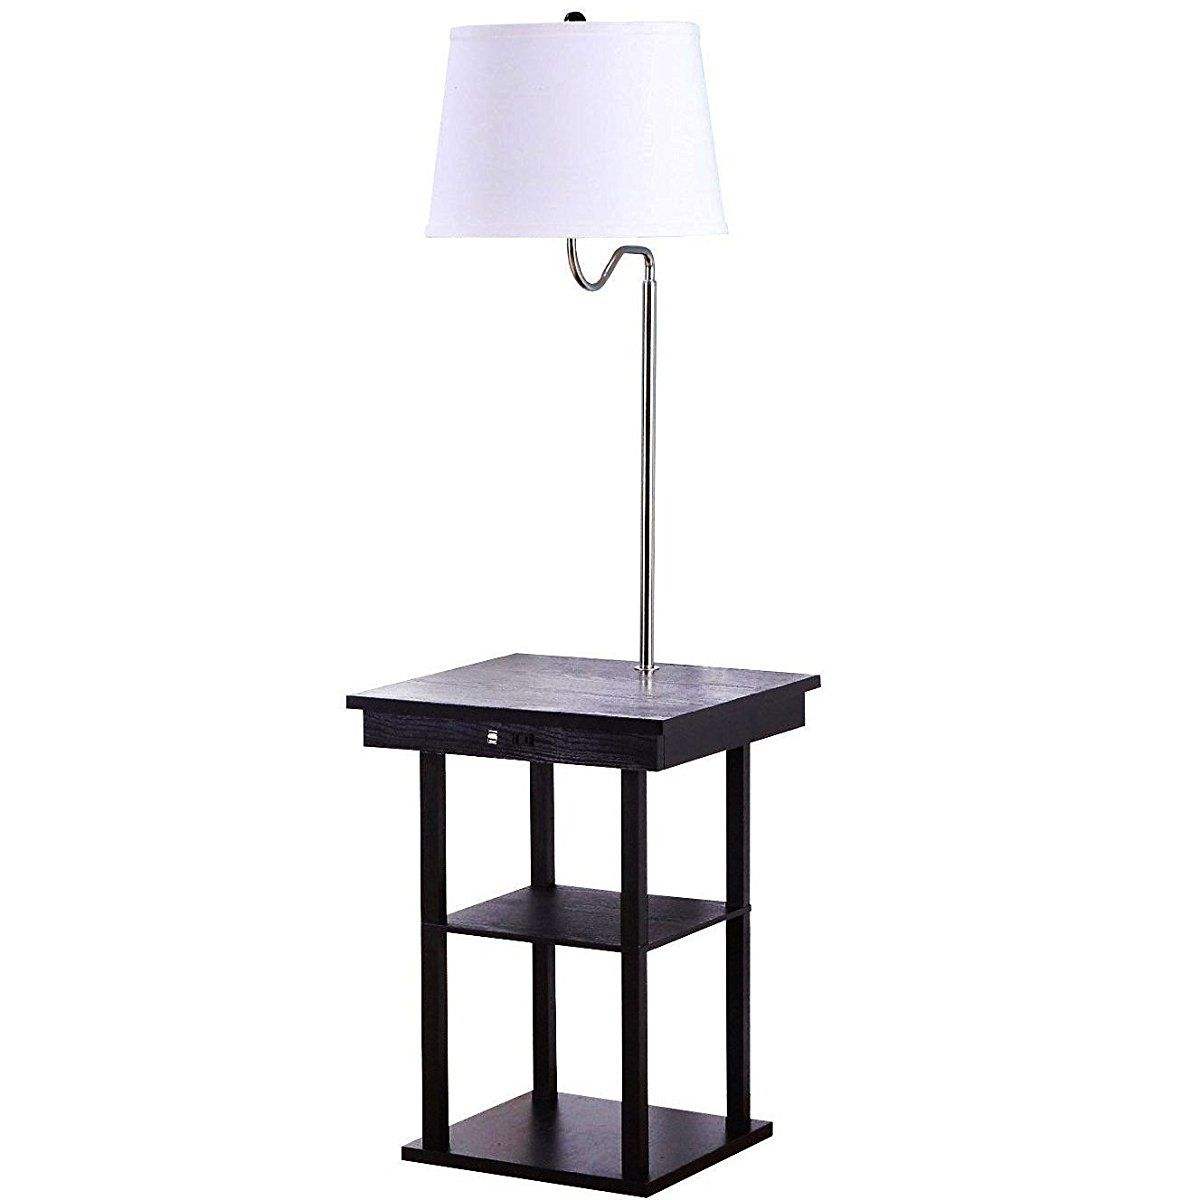 Table With Built In Lamp Endearing Brightech Madison Led Floor Lamp With Builtin Black Table And Shelf 2018